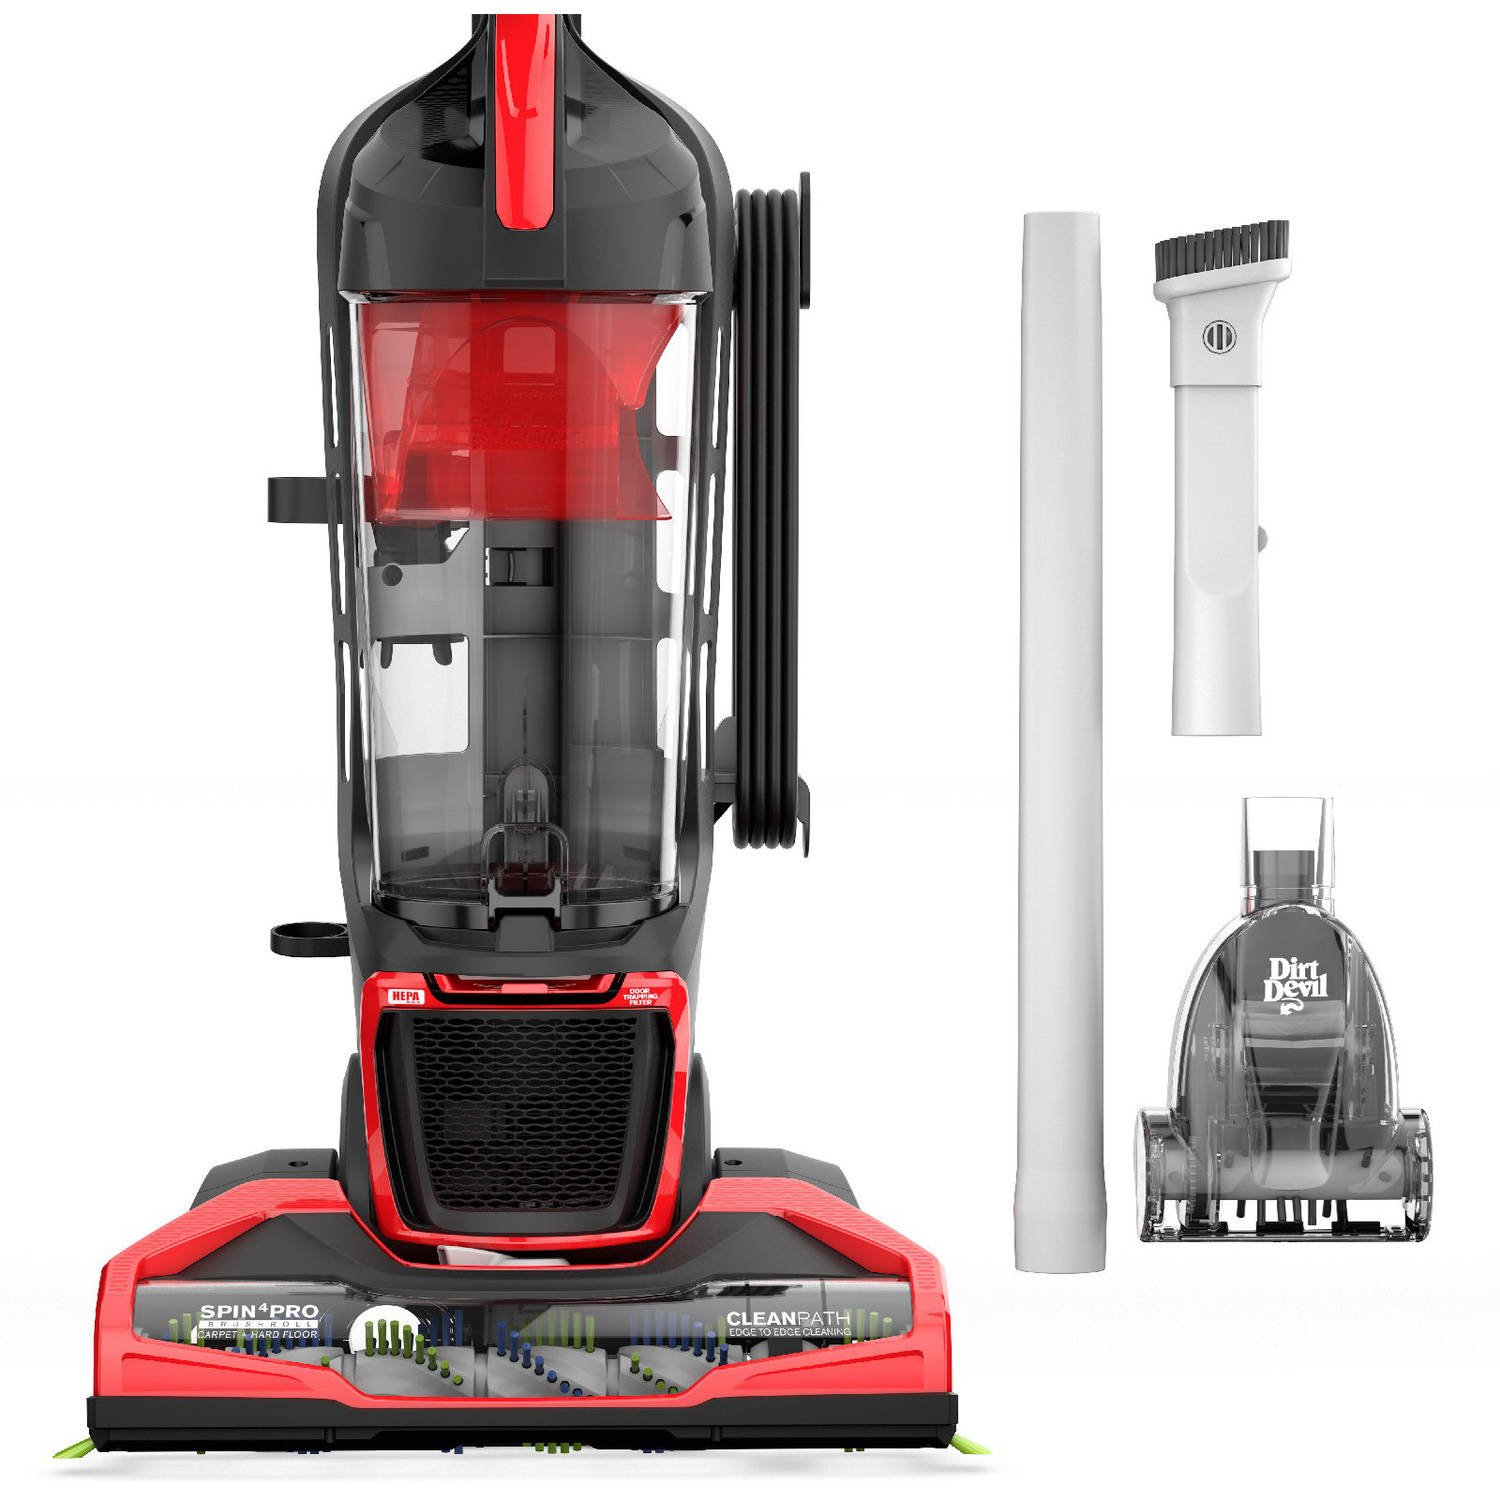 Dirt Devil Power Max Xl Bagless Upright Hepa Filtration Bissell Carpet Cleaner Parts Diagram Further Breeze Vacuum With Lysol All Purpose